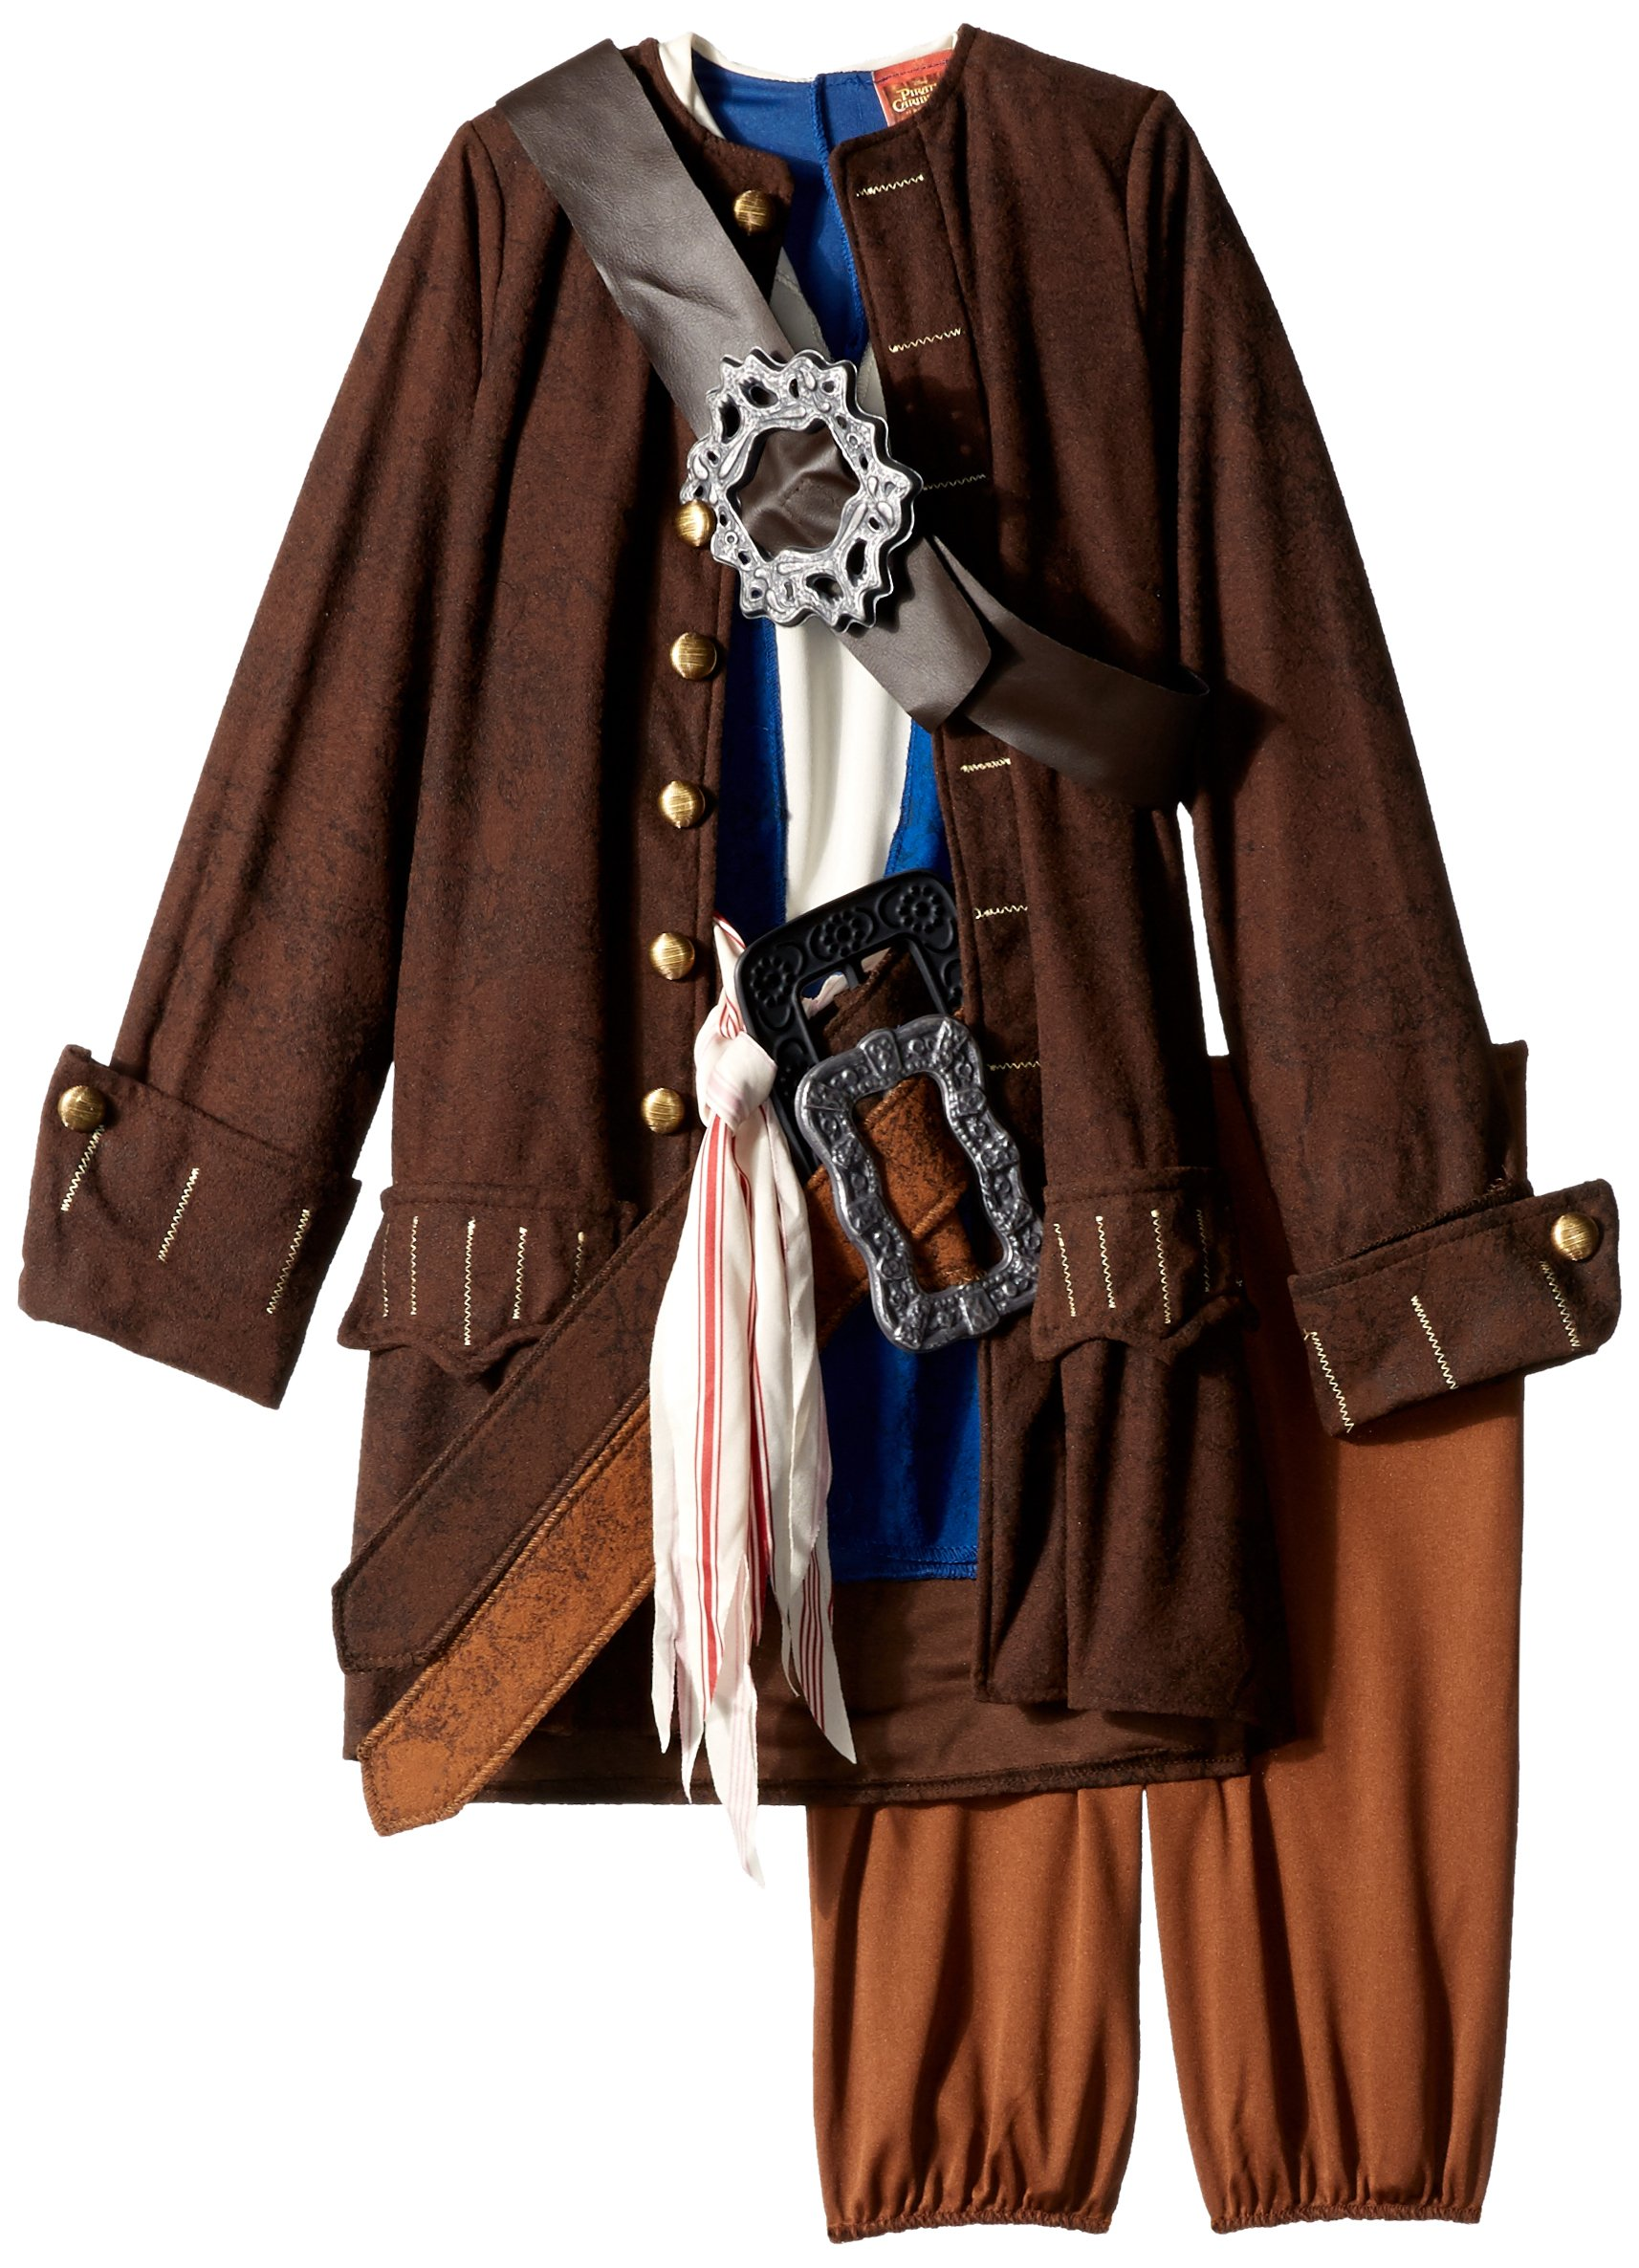 Disney Pirates of The Caribbean Captain Jack Sparrow Prestige Premium Boys Costume, Small/4-6 by Disguise (Image #3)